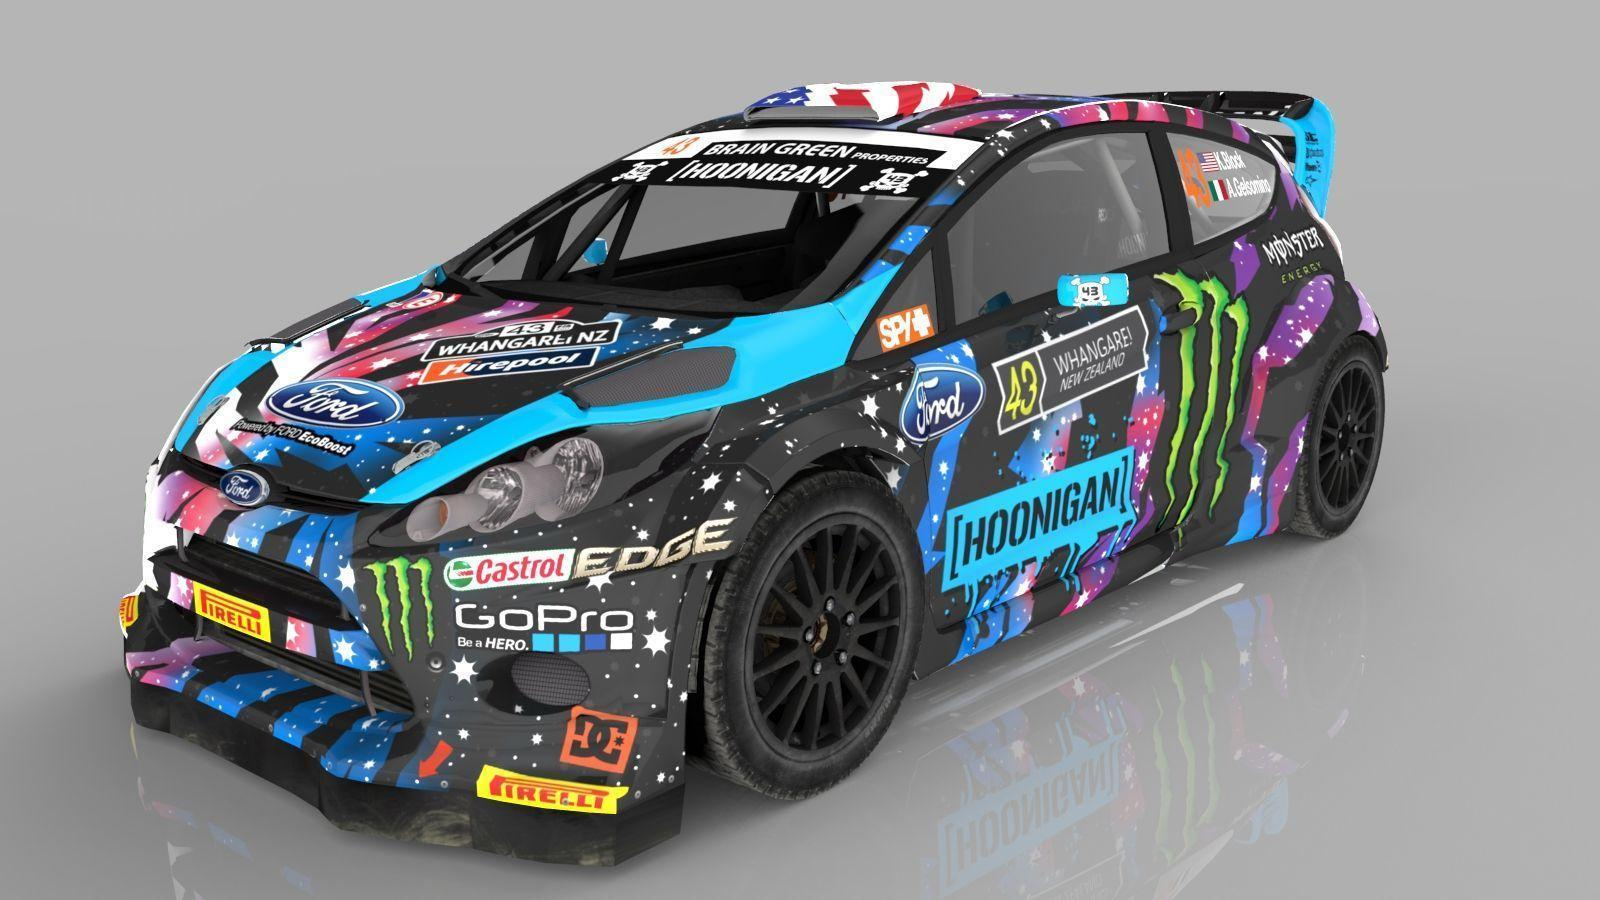 wallpapers ford fiesta ken block ken block gopro hoonigan. Cars Review. Best American Auto & Cars Review